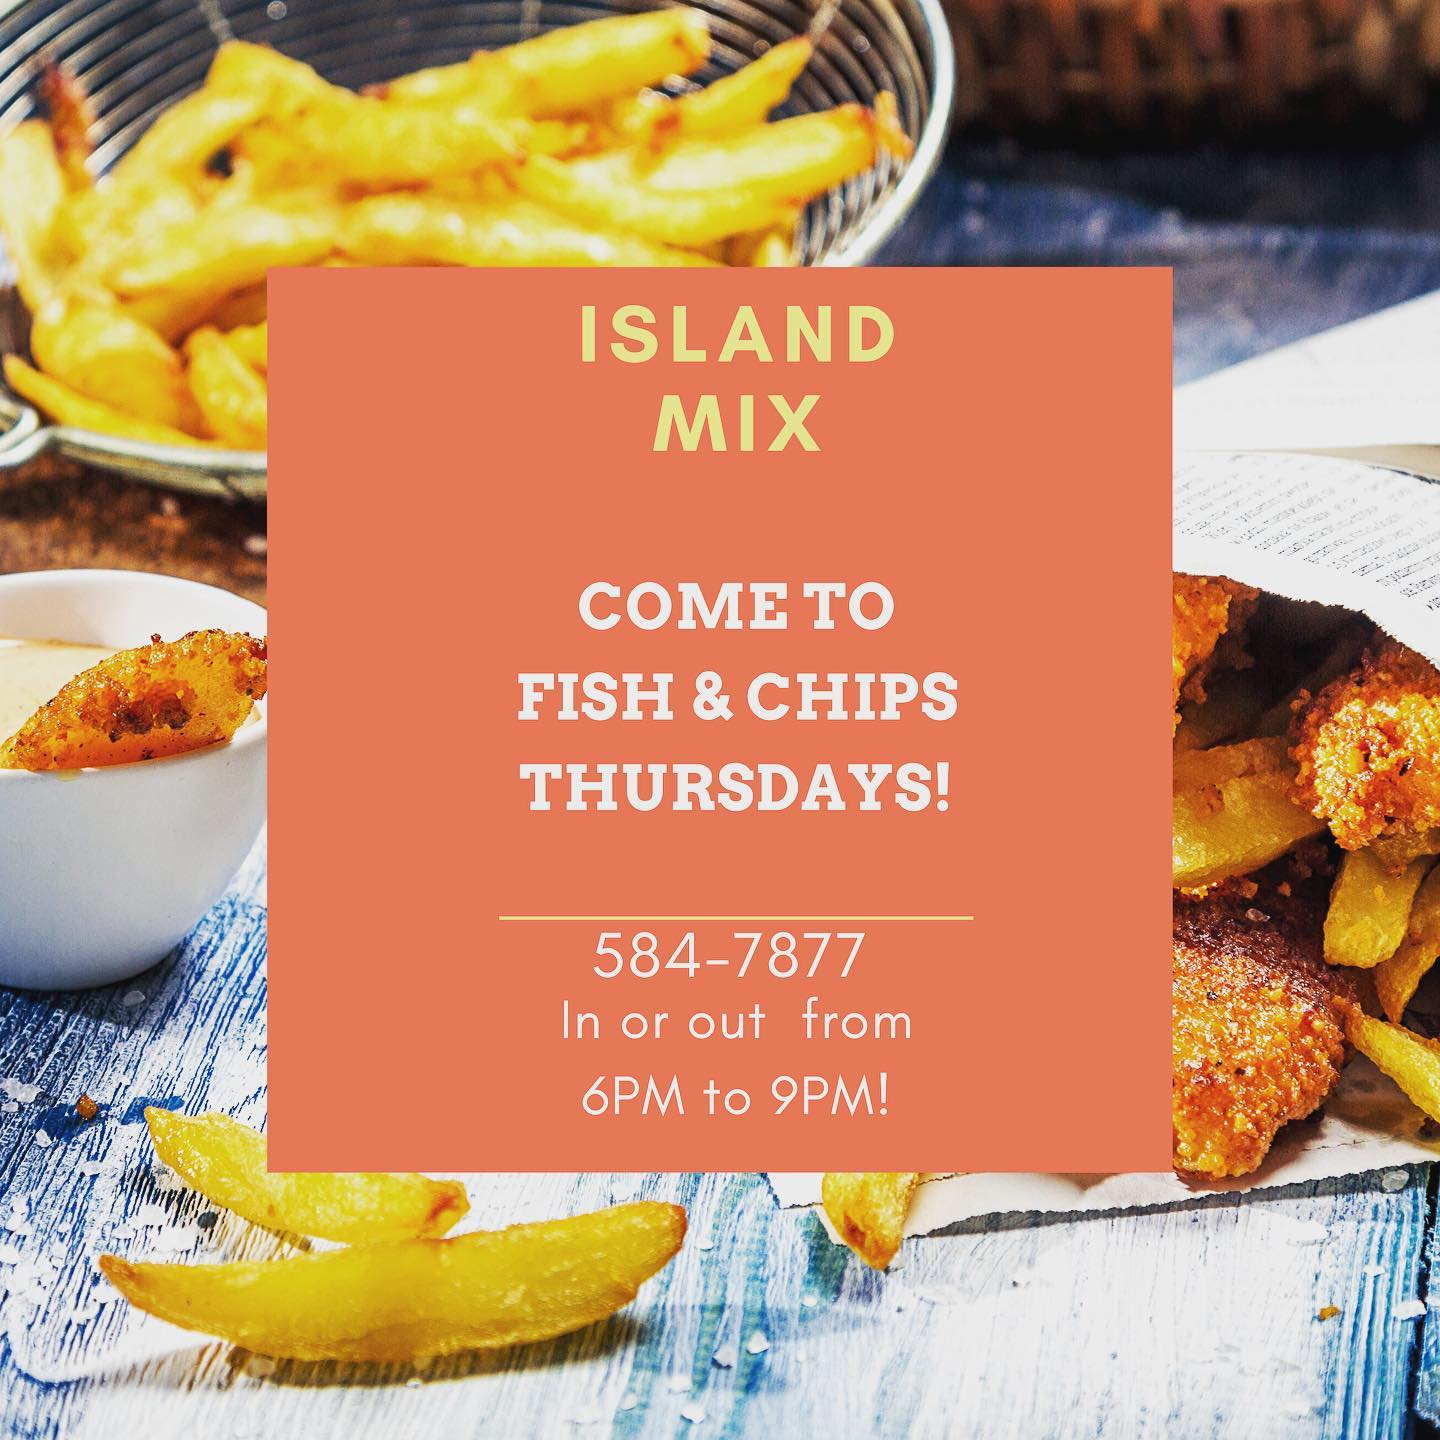 delicious fish & chips - just US$10 / EC$25 at island mix